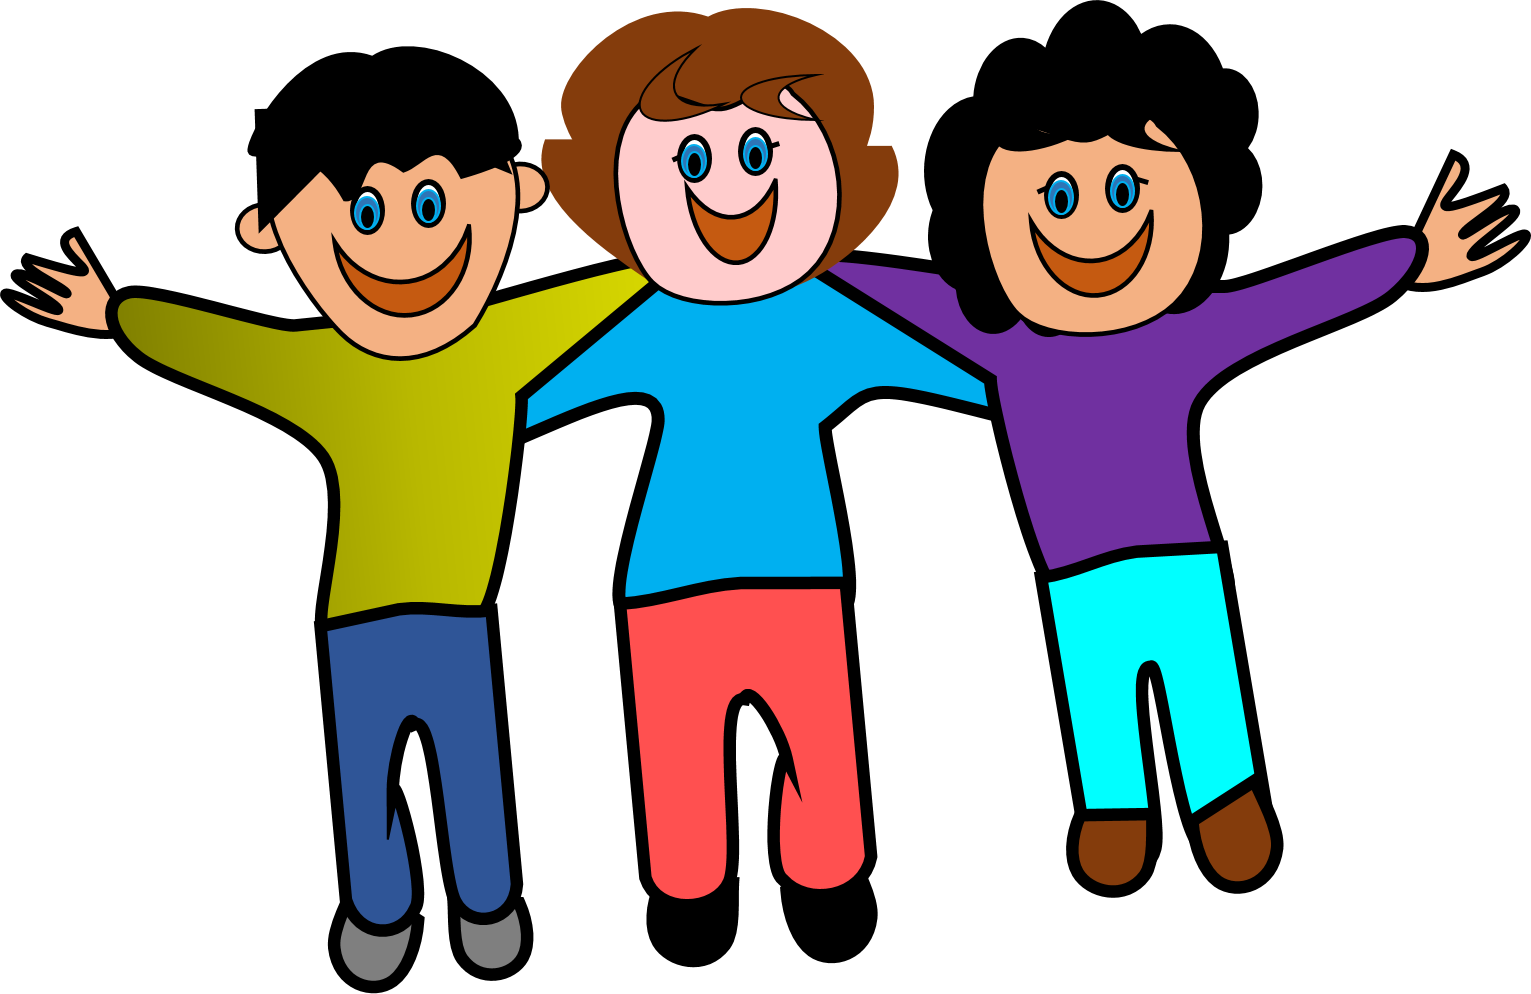 Enjoyment With Friends Clipart - Enjoyment With Friends PNG